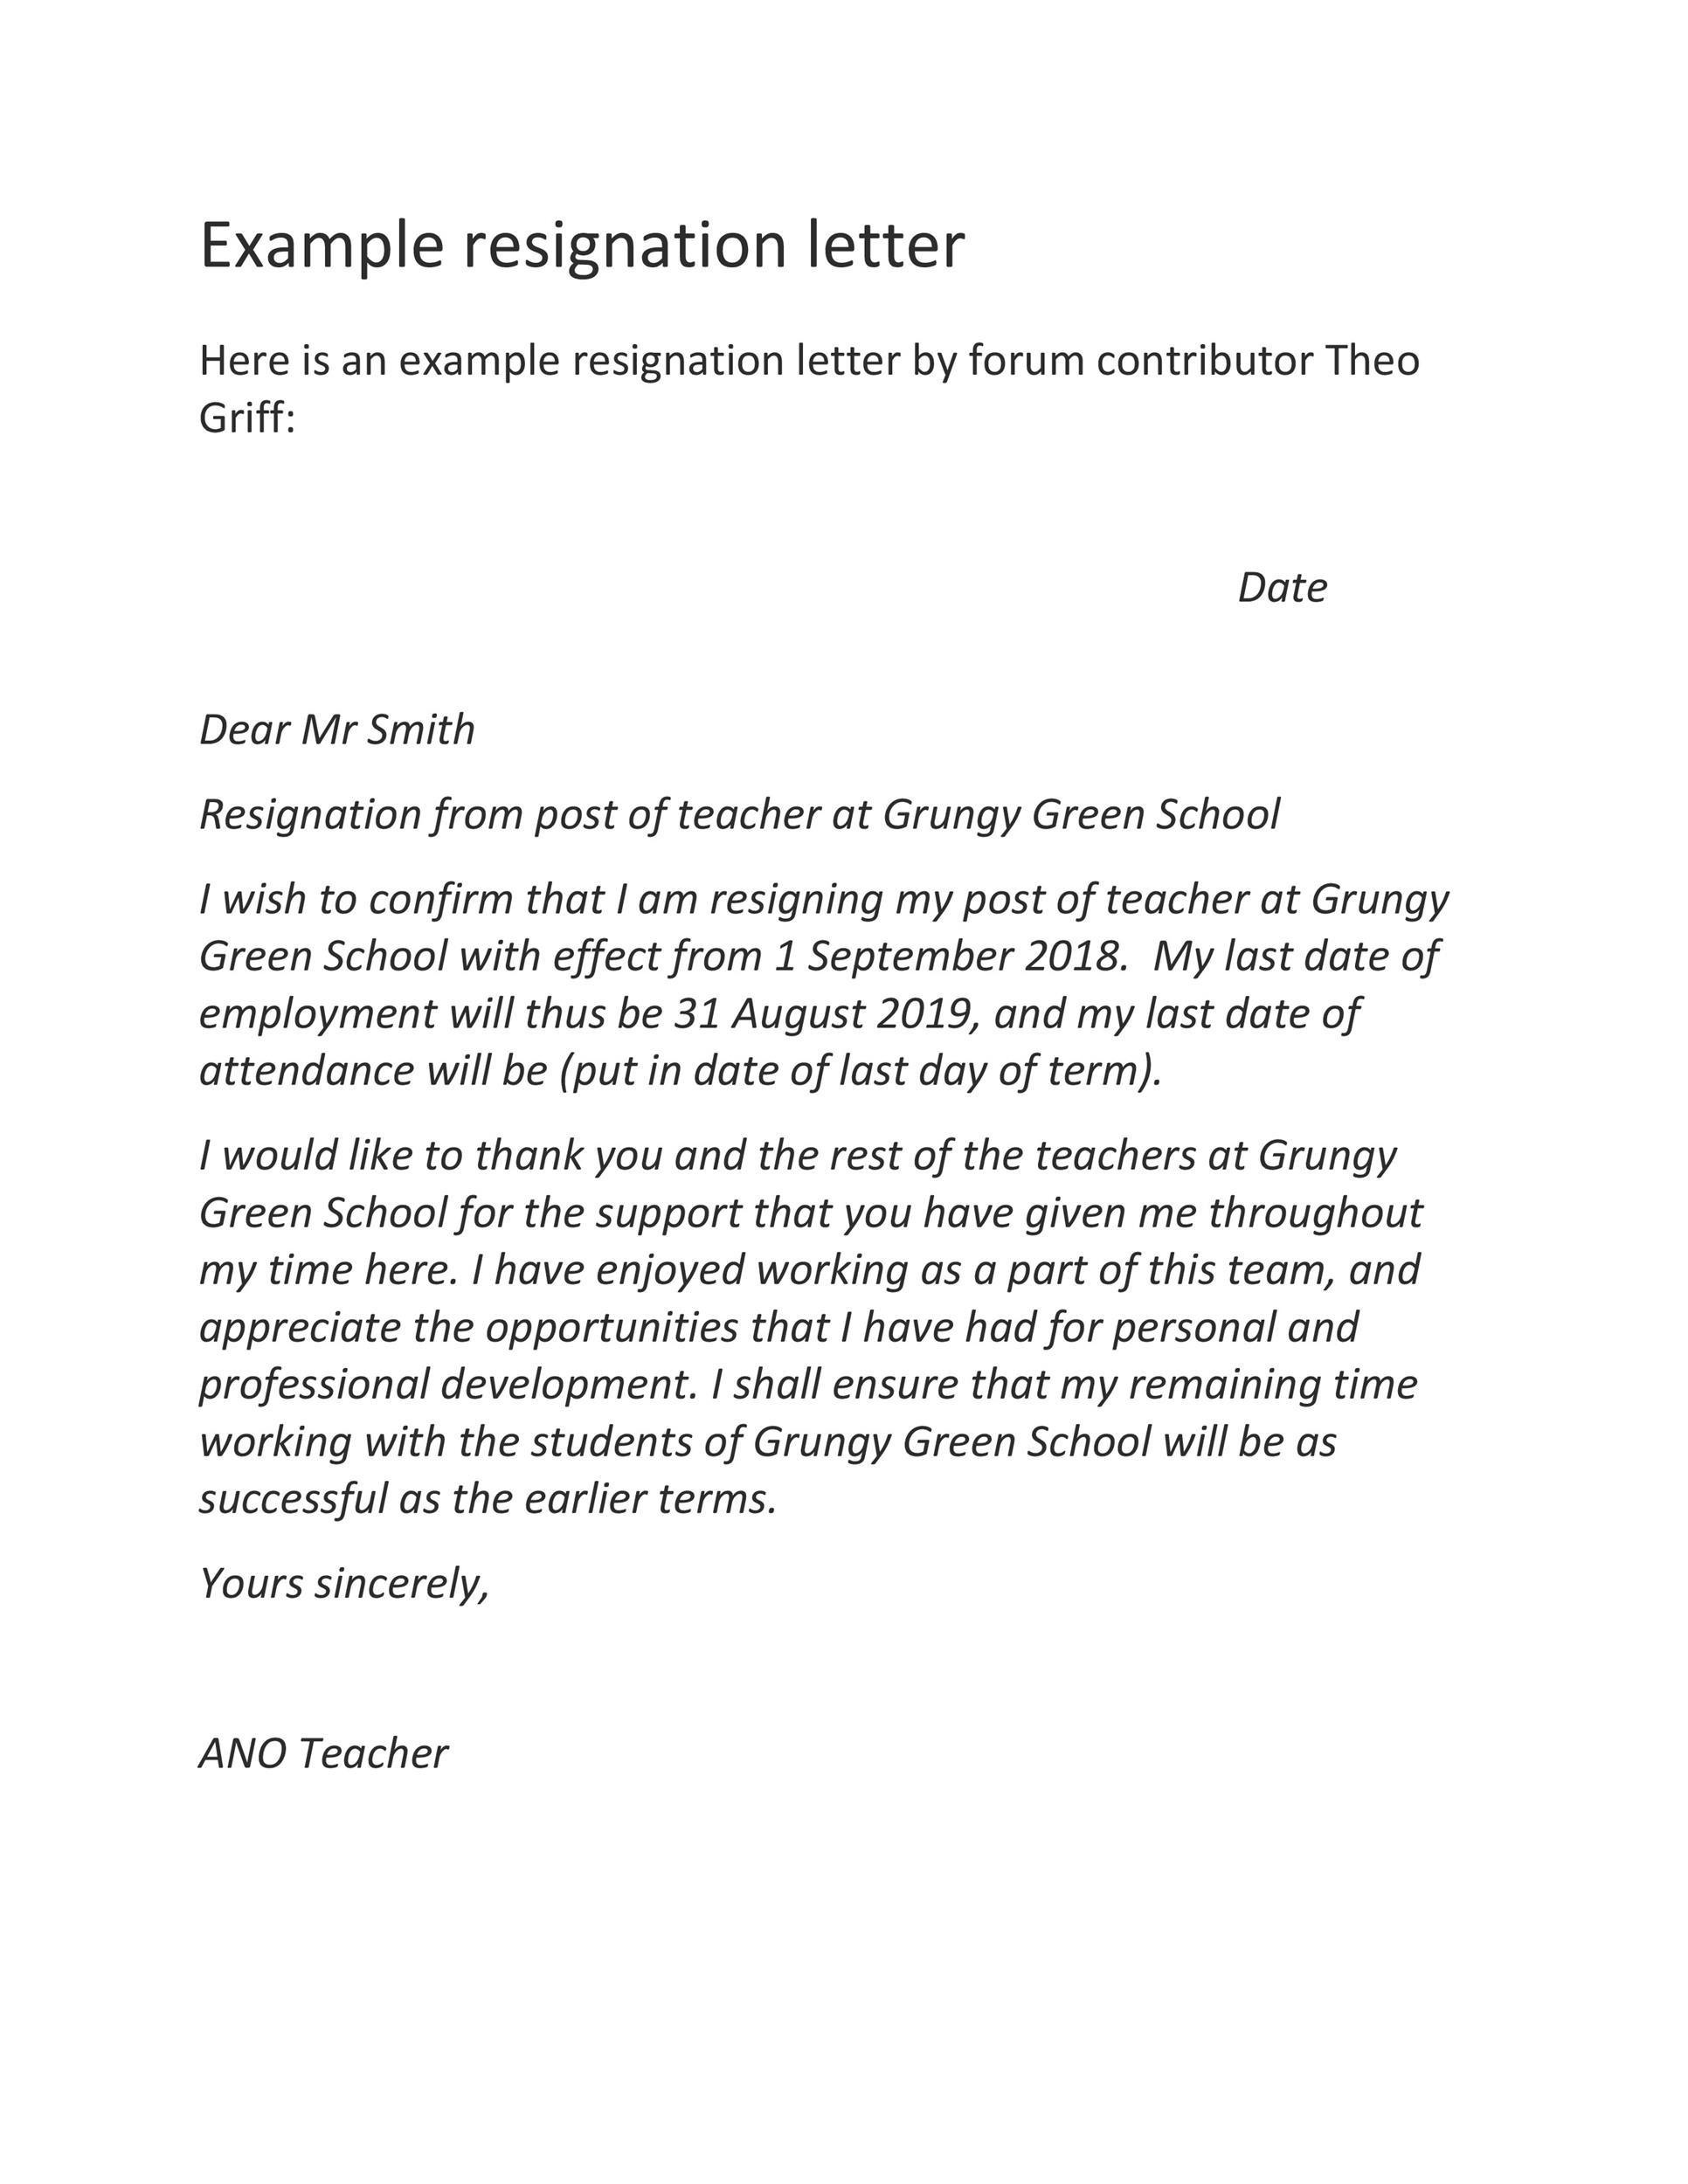 30 BEST Teacher Resignation Letters MS Word ᐅ TemplateLab